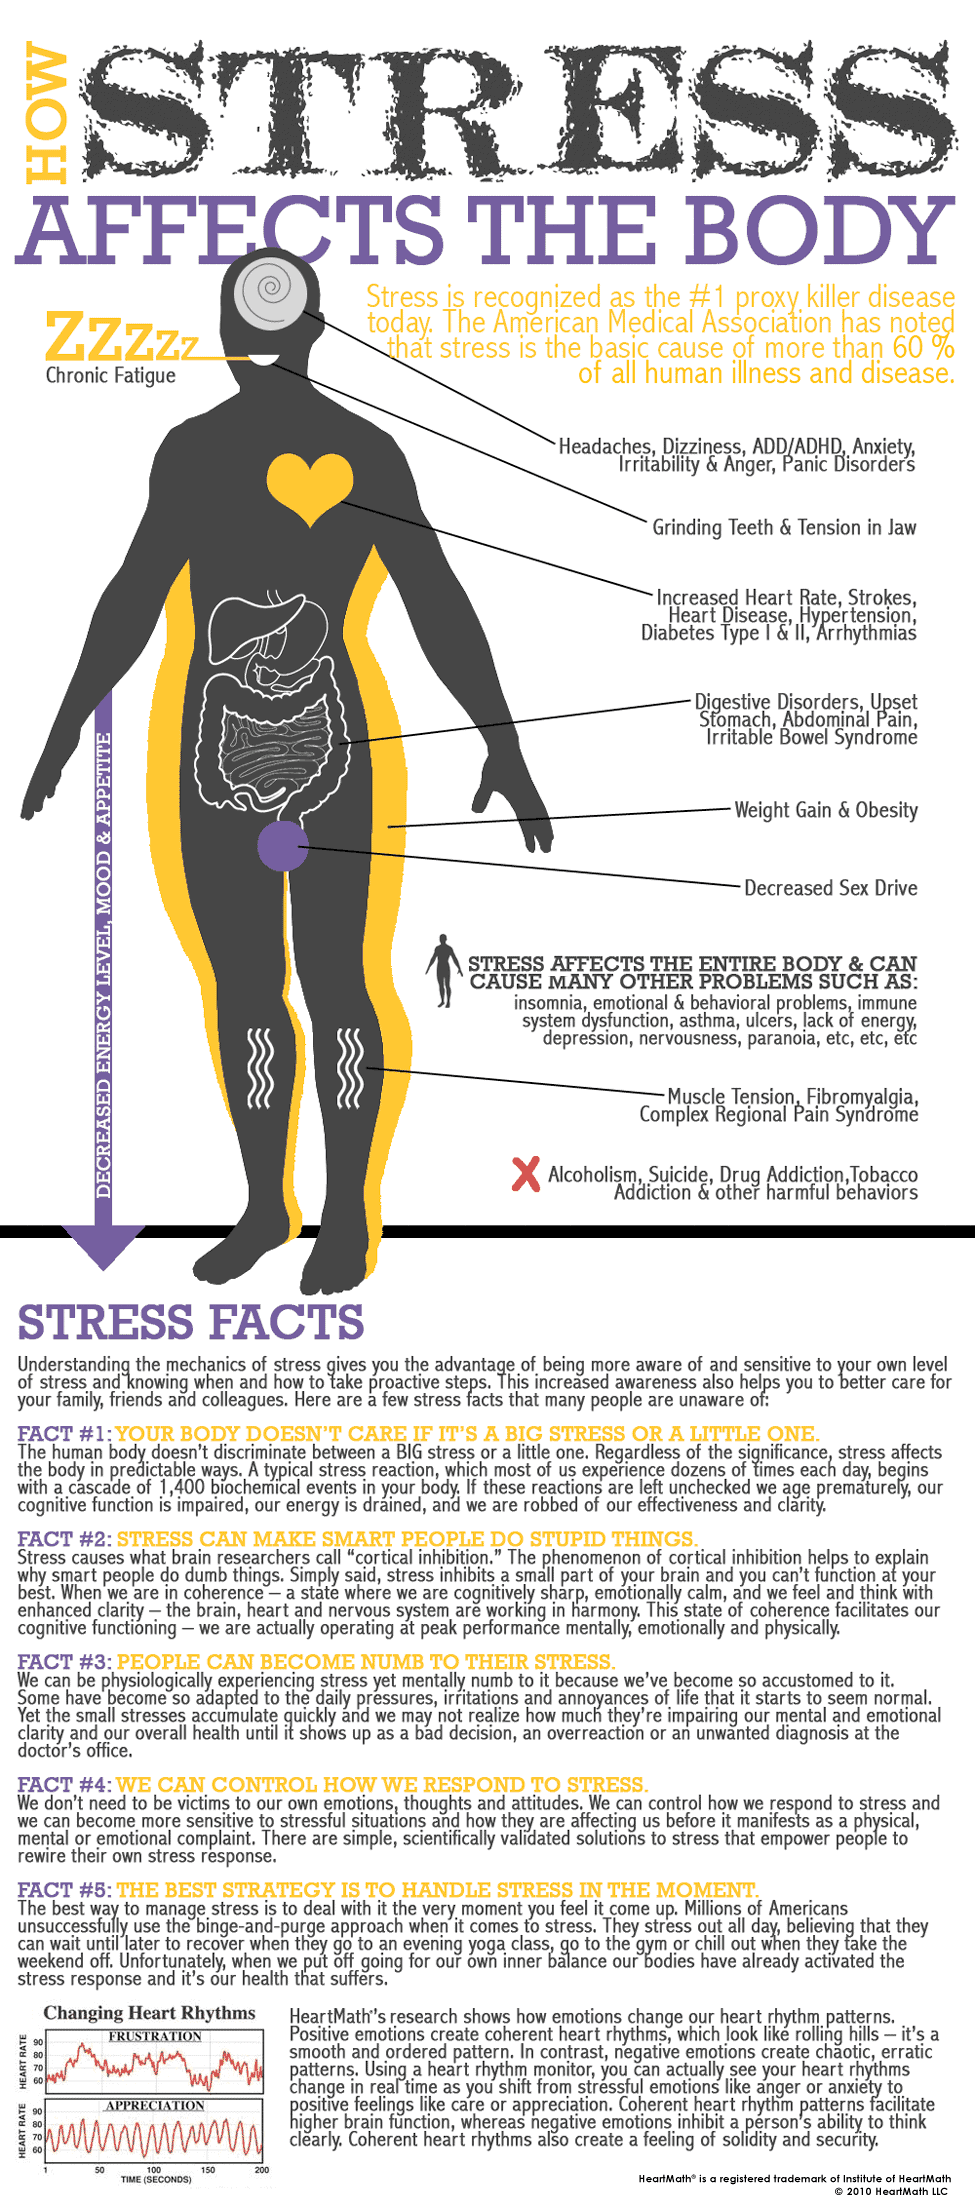 https://i1.wp.com/dailyinfographic.com/wp-content/uploads/2012/05/infographic-stress-effects.png